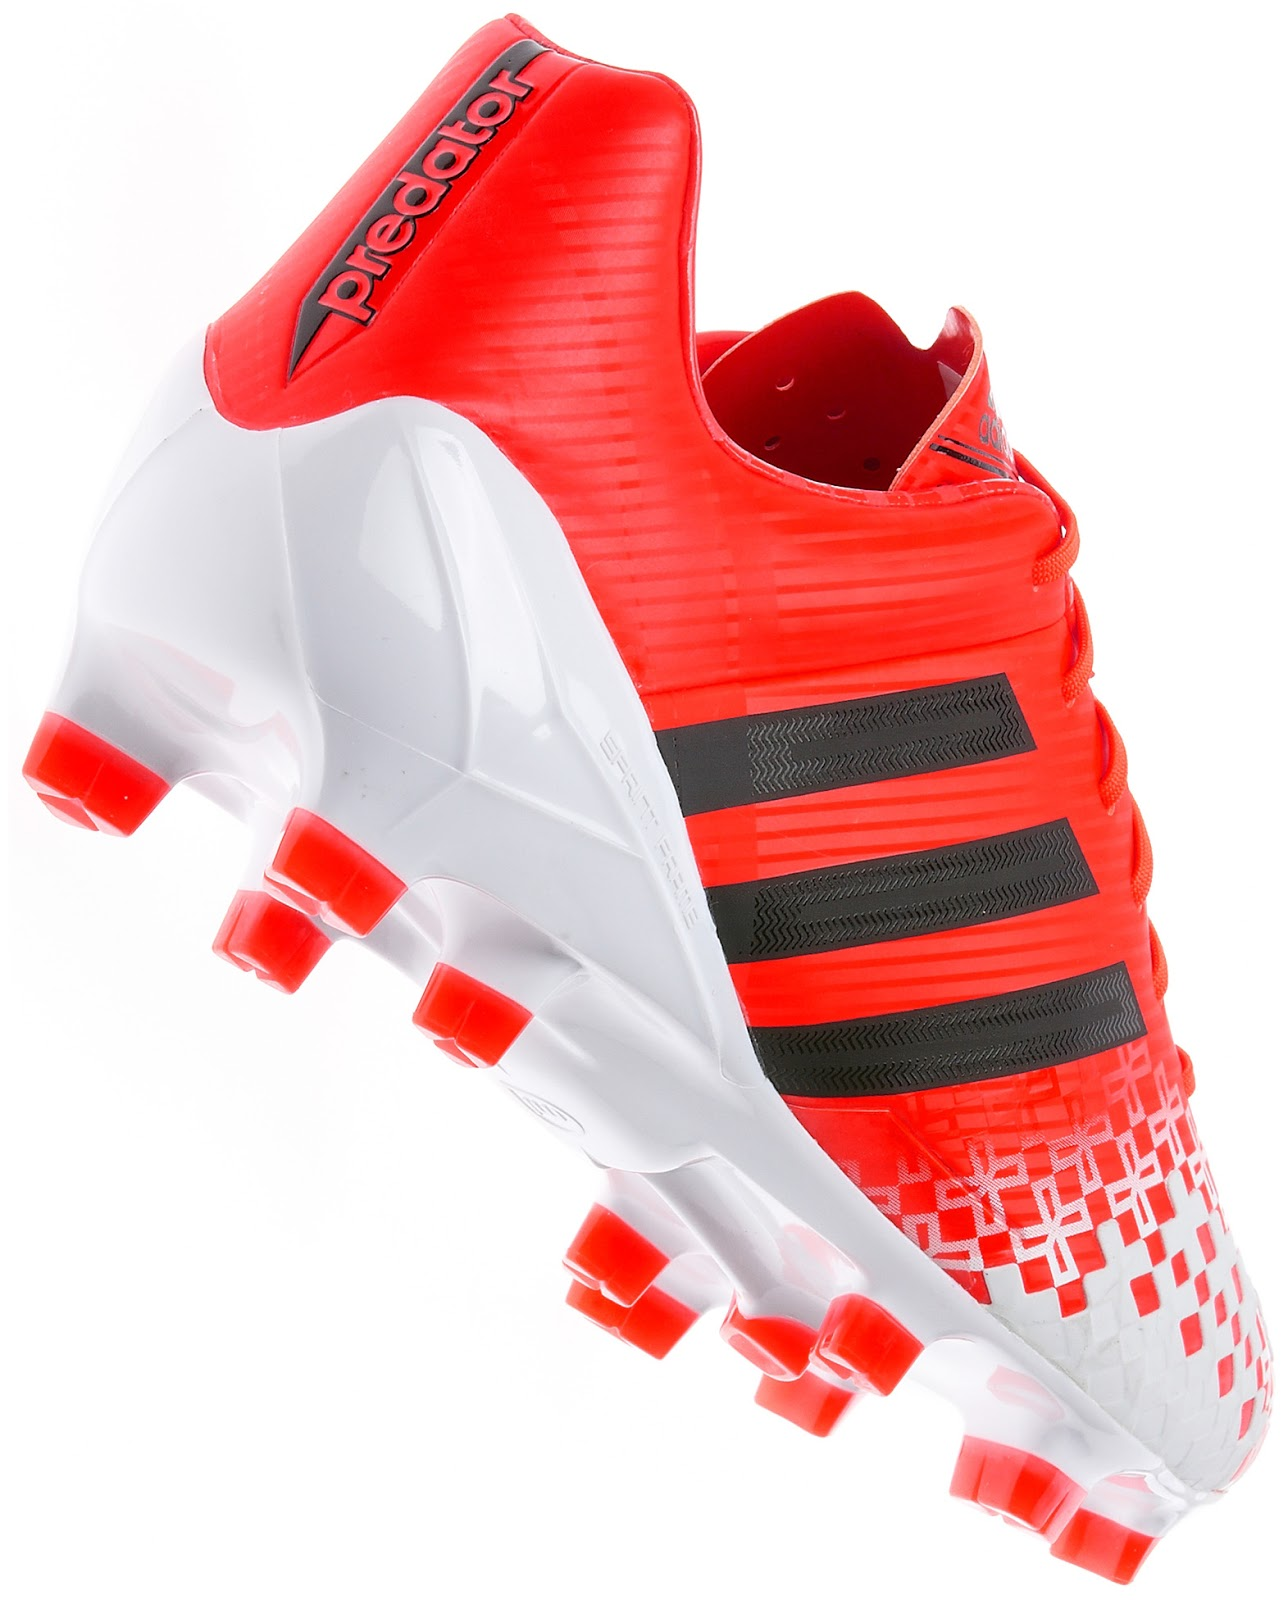 finest selection 7cd08 85842 adidas predator lz 2